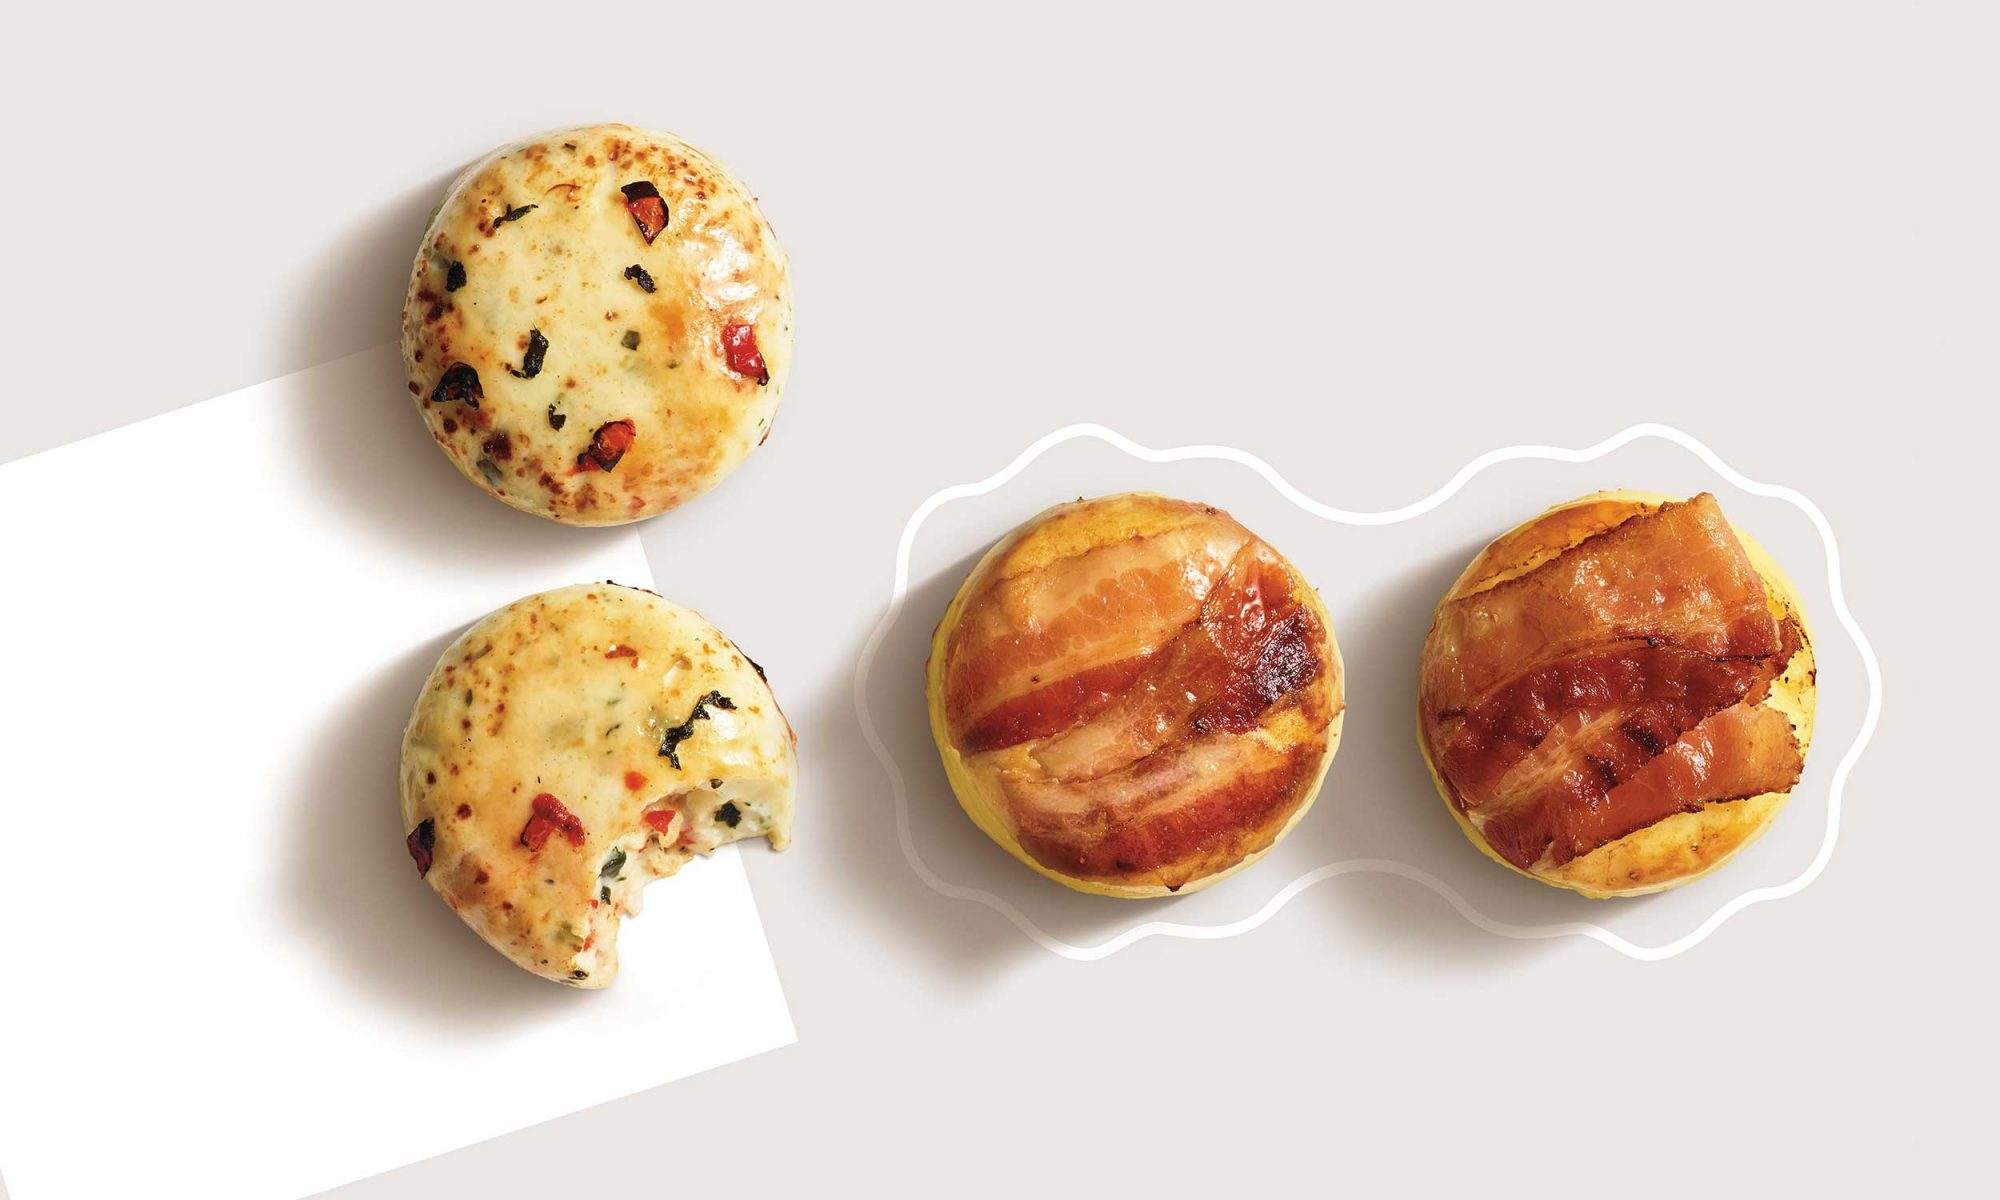 EC: Starbucks' New Healthy Breakfast Uses This Trick from the World's Best Chefs